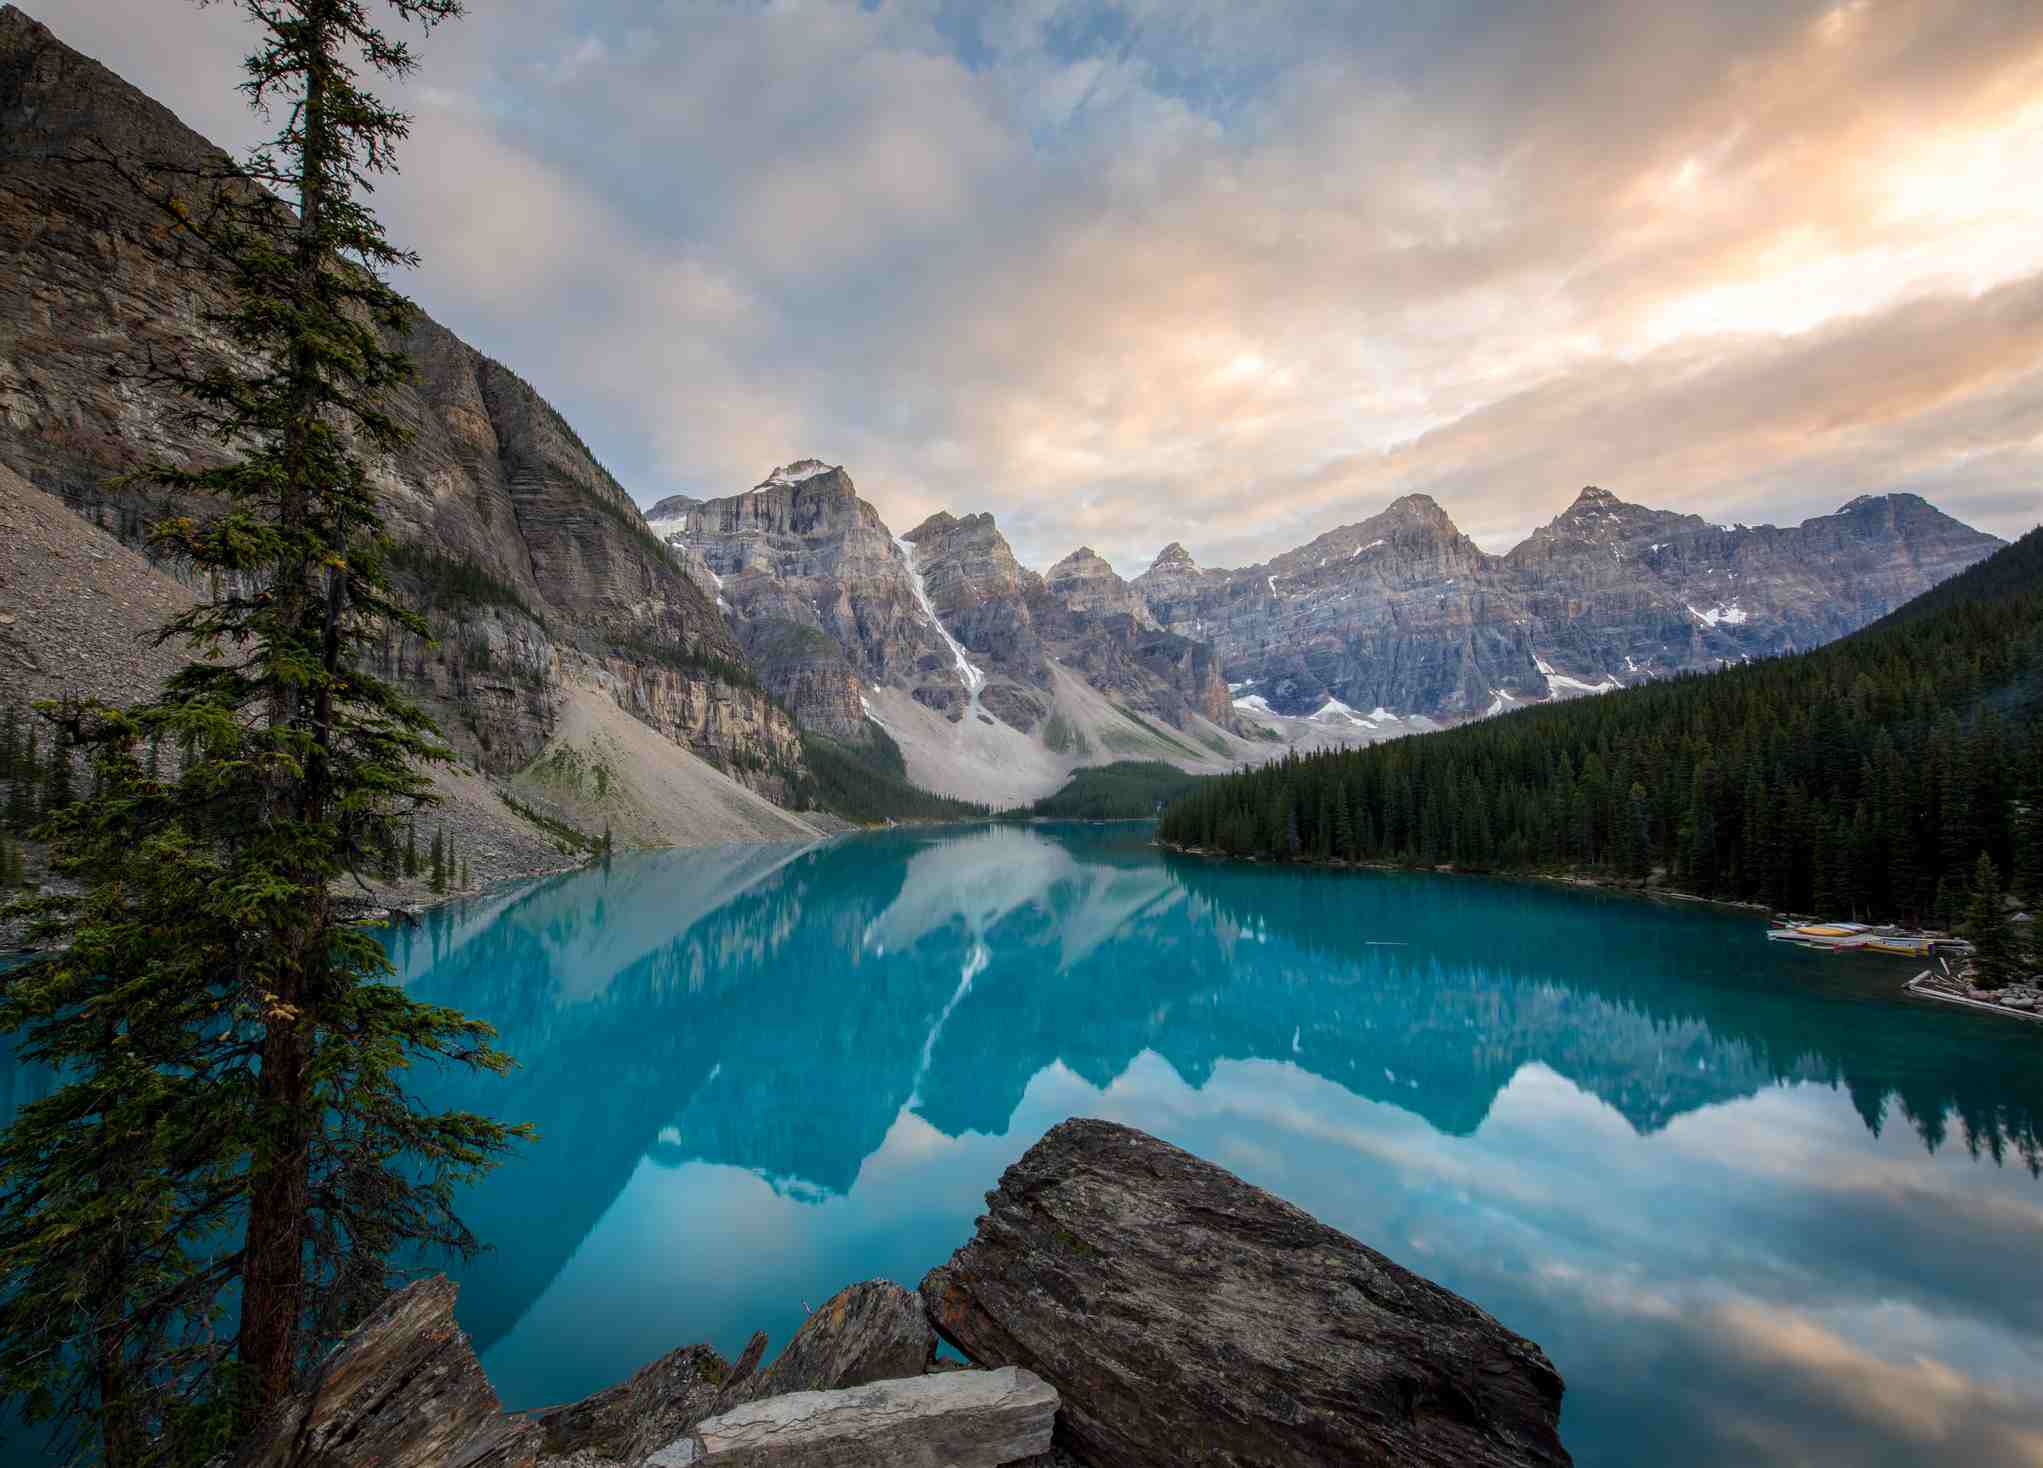 Moraine Lake in the Canadian Rockies.